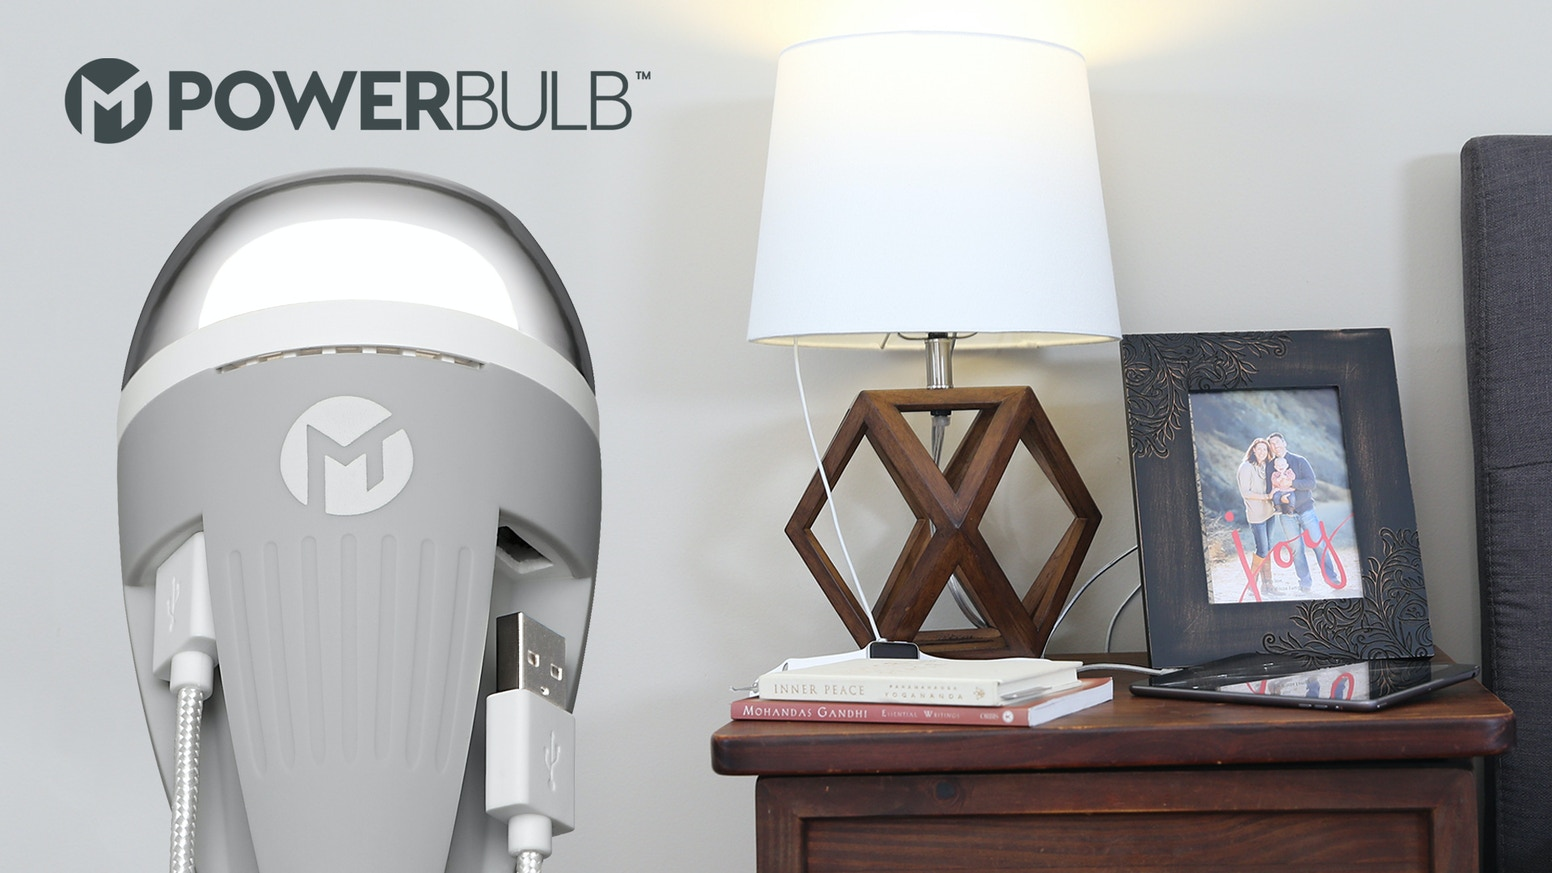 PowerBulb is the world's first LED light bulb with dual USB ports that turns any lamp into a charging station. Where #LightMeetsPower